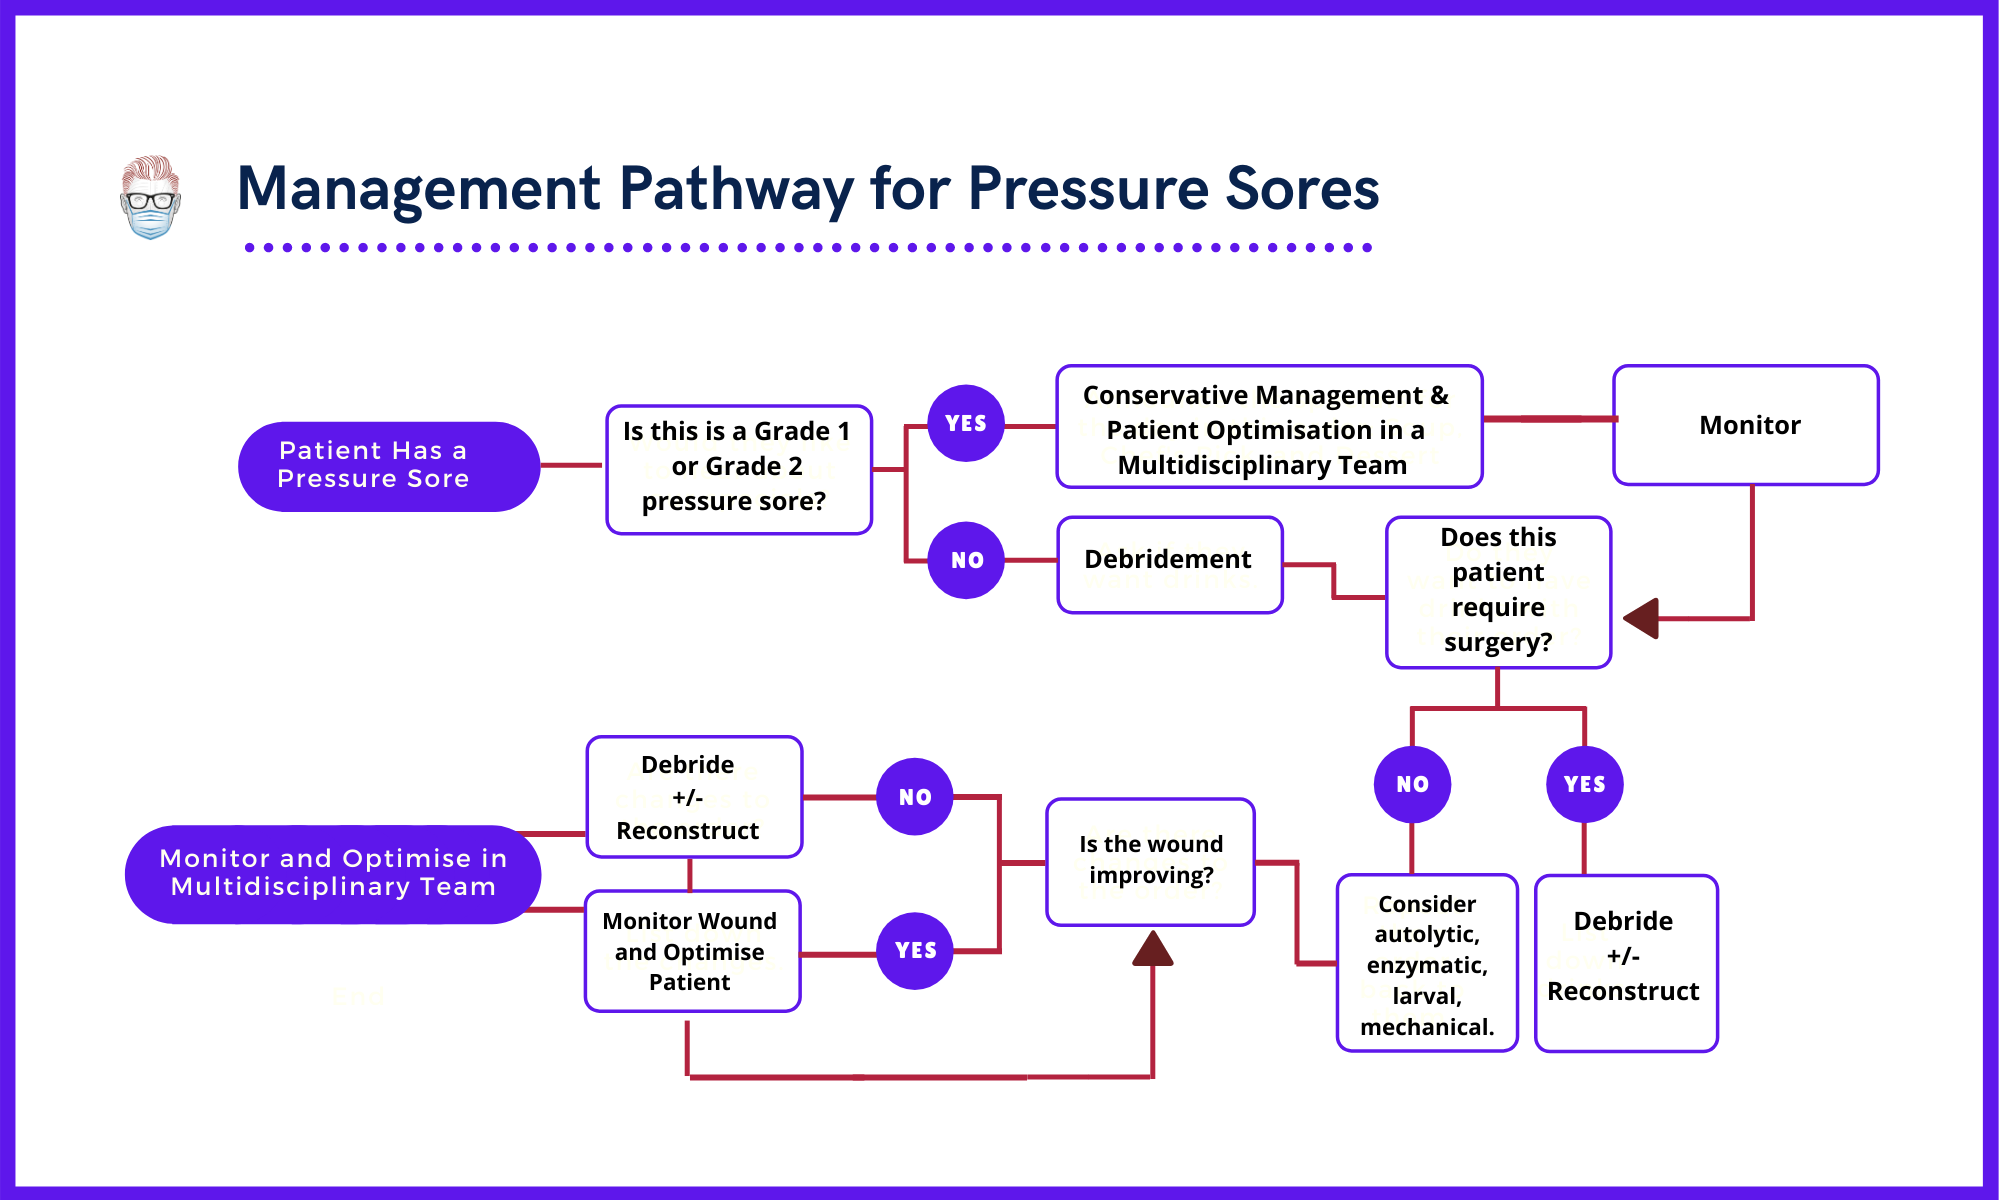 Management Pathway for Pressure Sores, treatment of pressure ulcers, debridement of pressure sores and ulcers, surgery for pressure sores